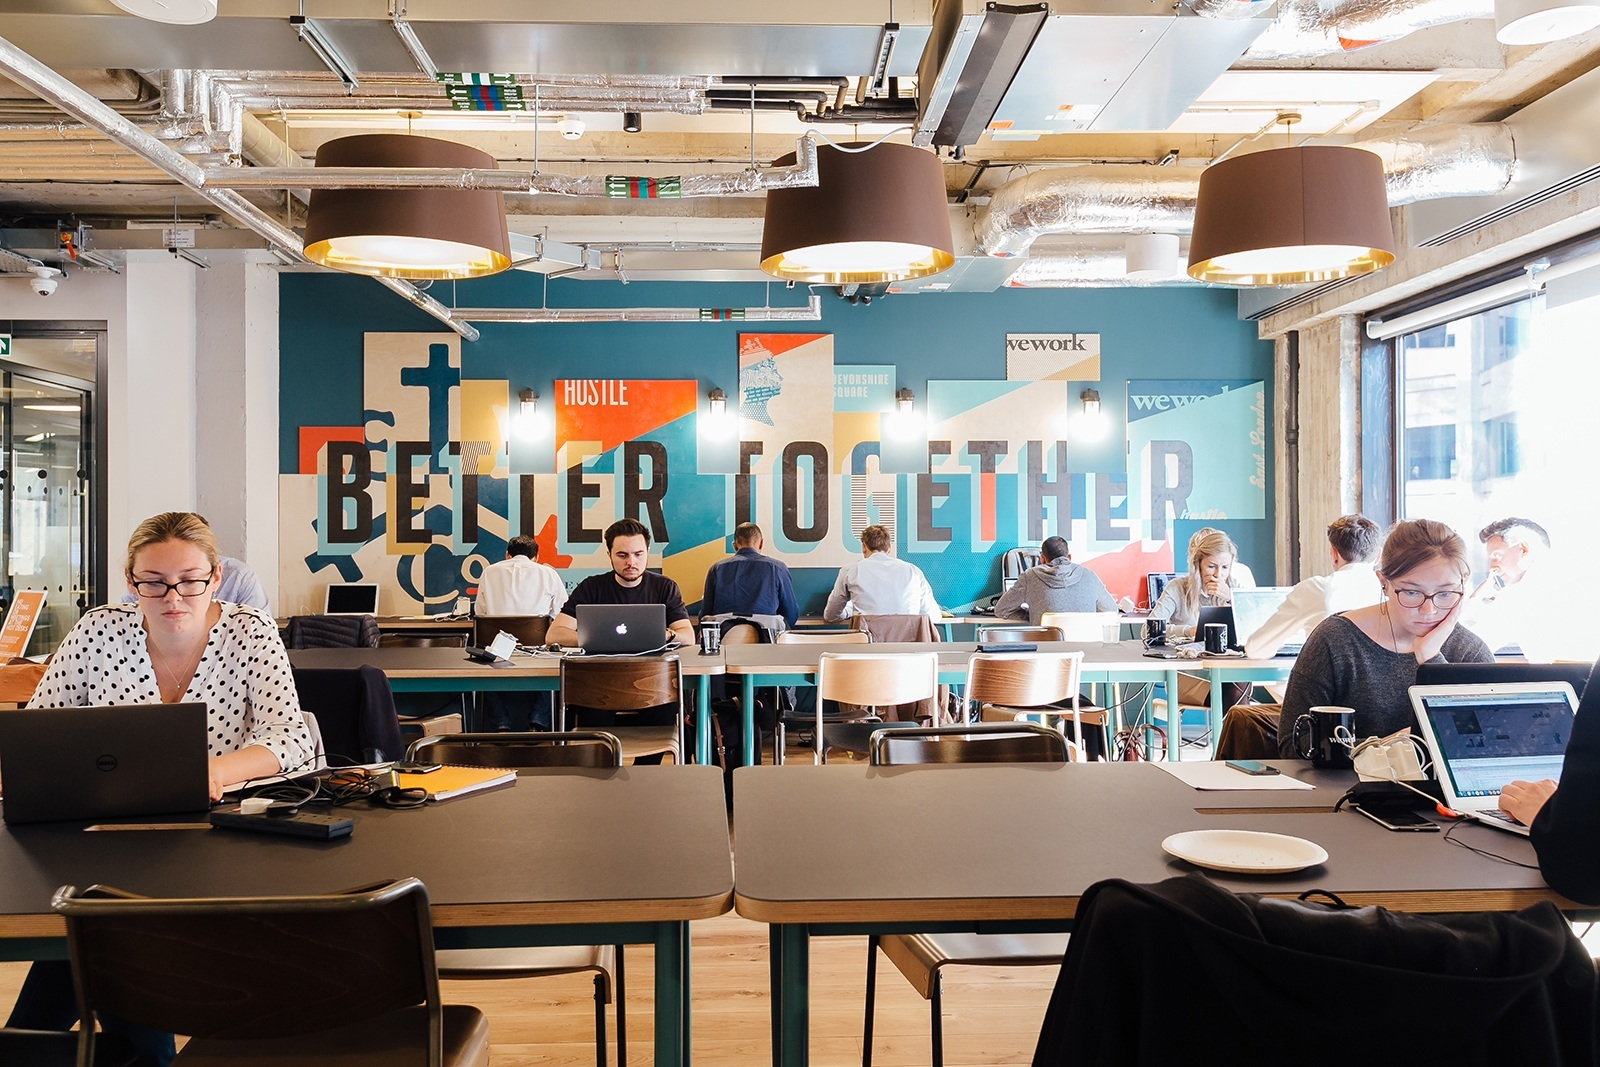 Inside wework s trendy coworking space in devonshire for Oficinas barclays barcelona